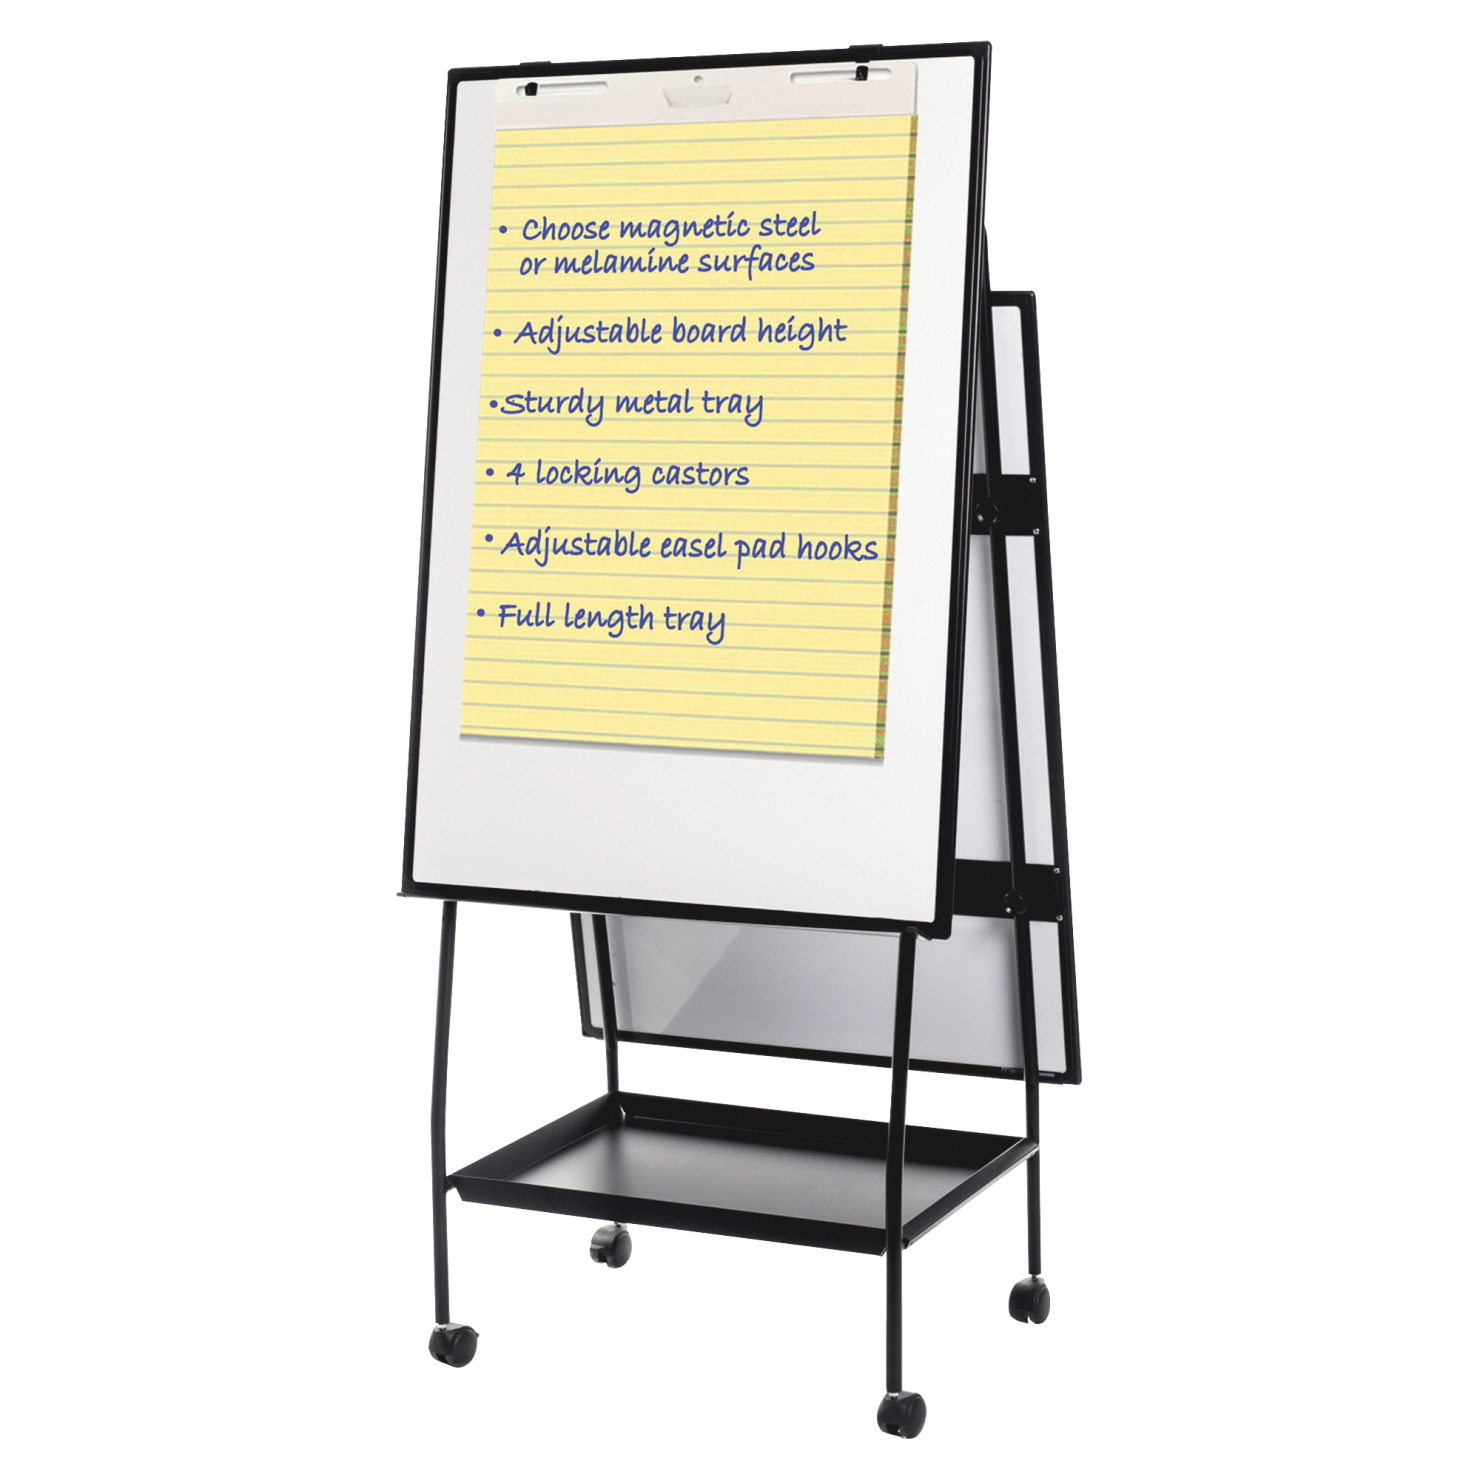 Bi Office Dry Erase Board Easel 36 X 25 X 78 Inches White